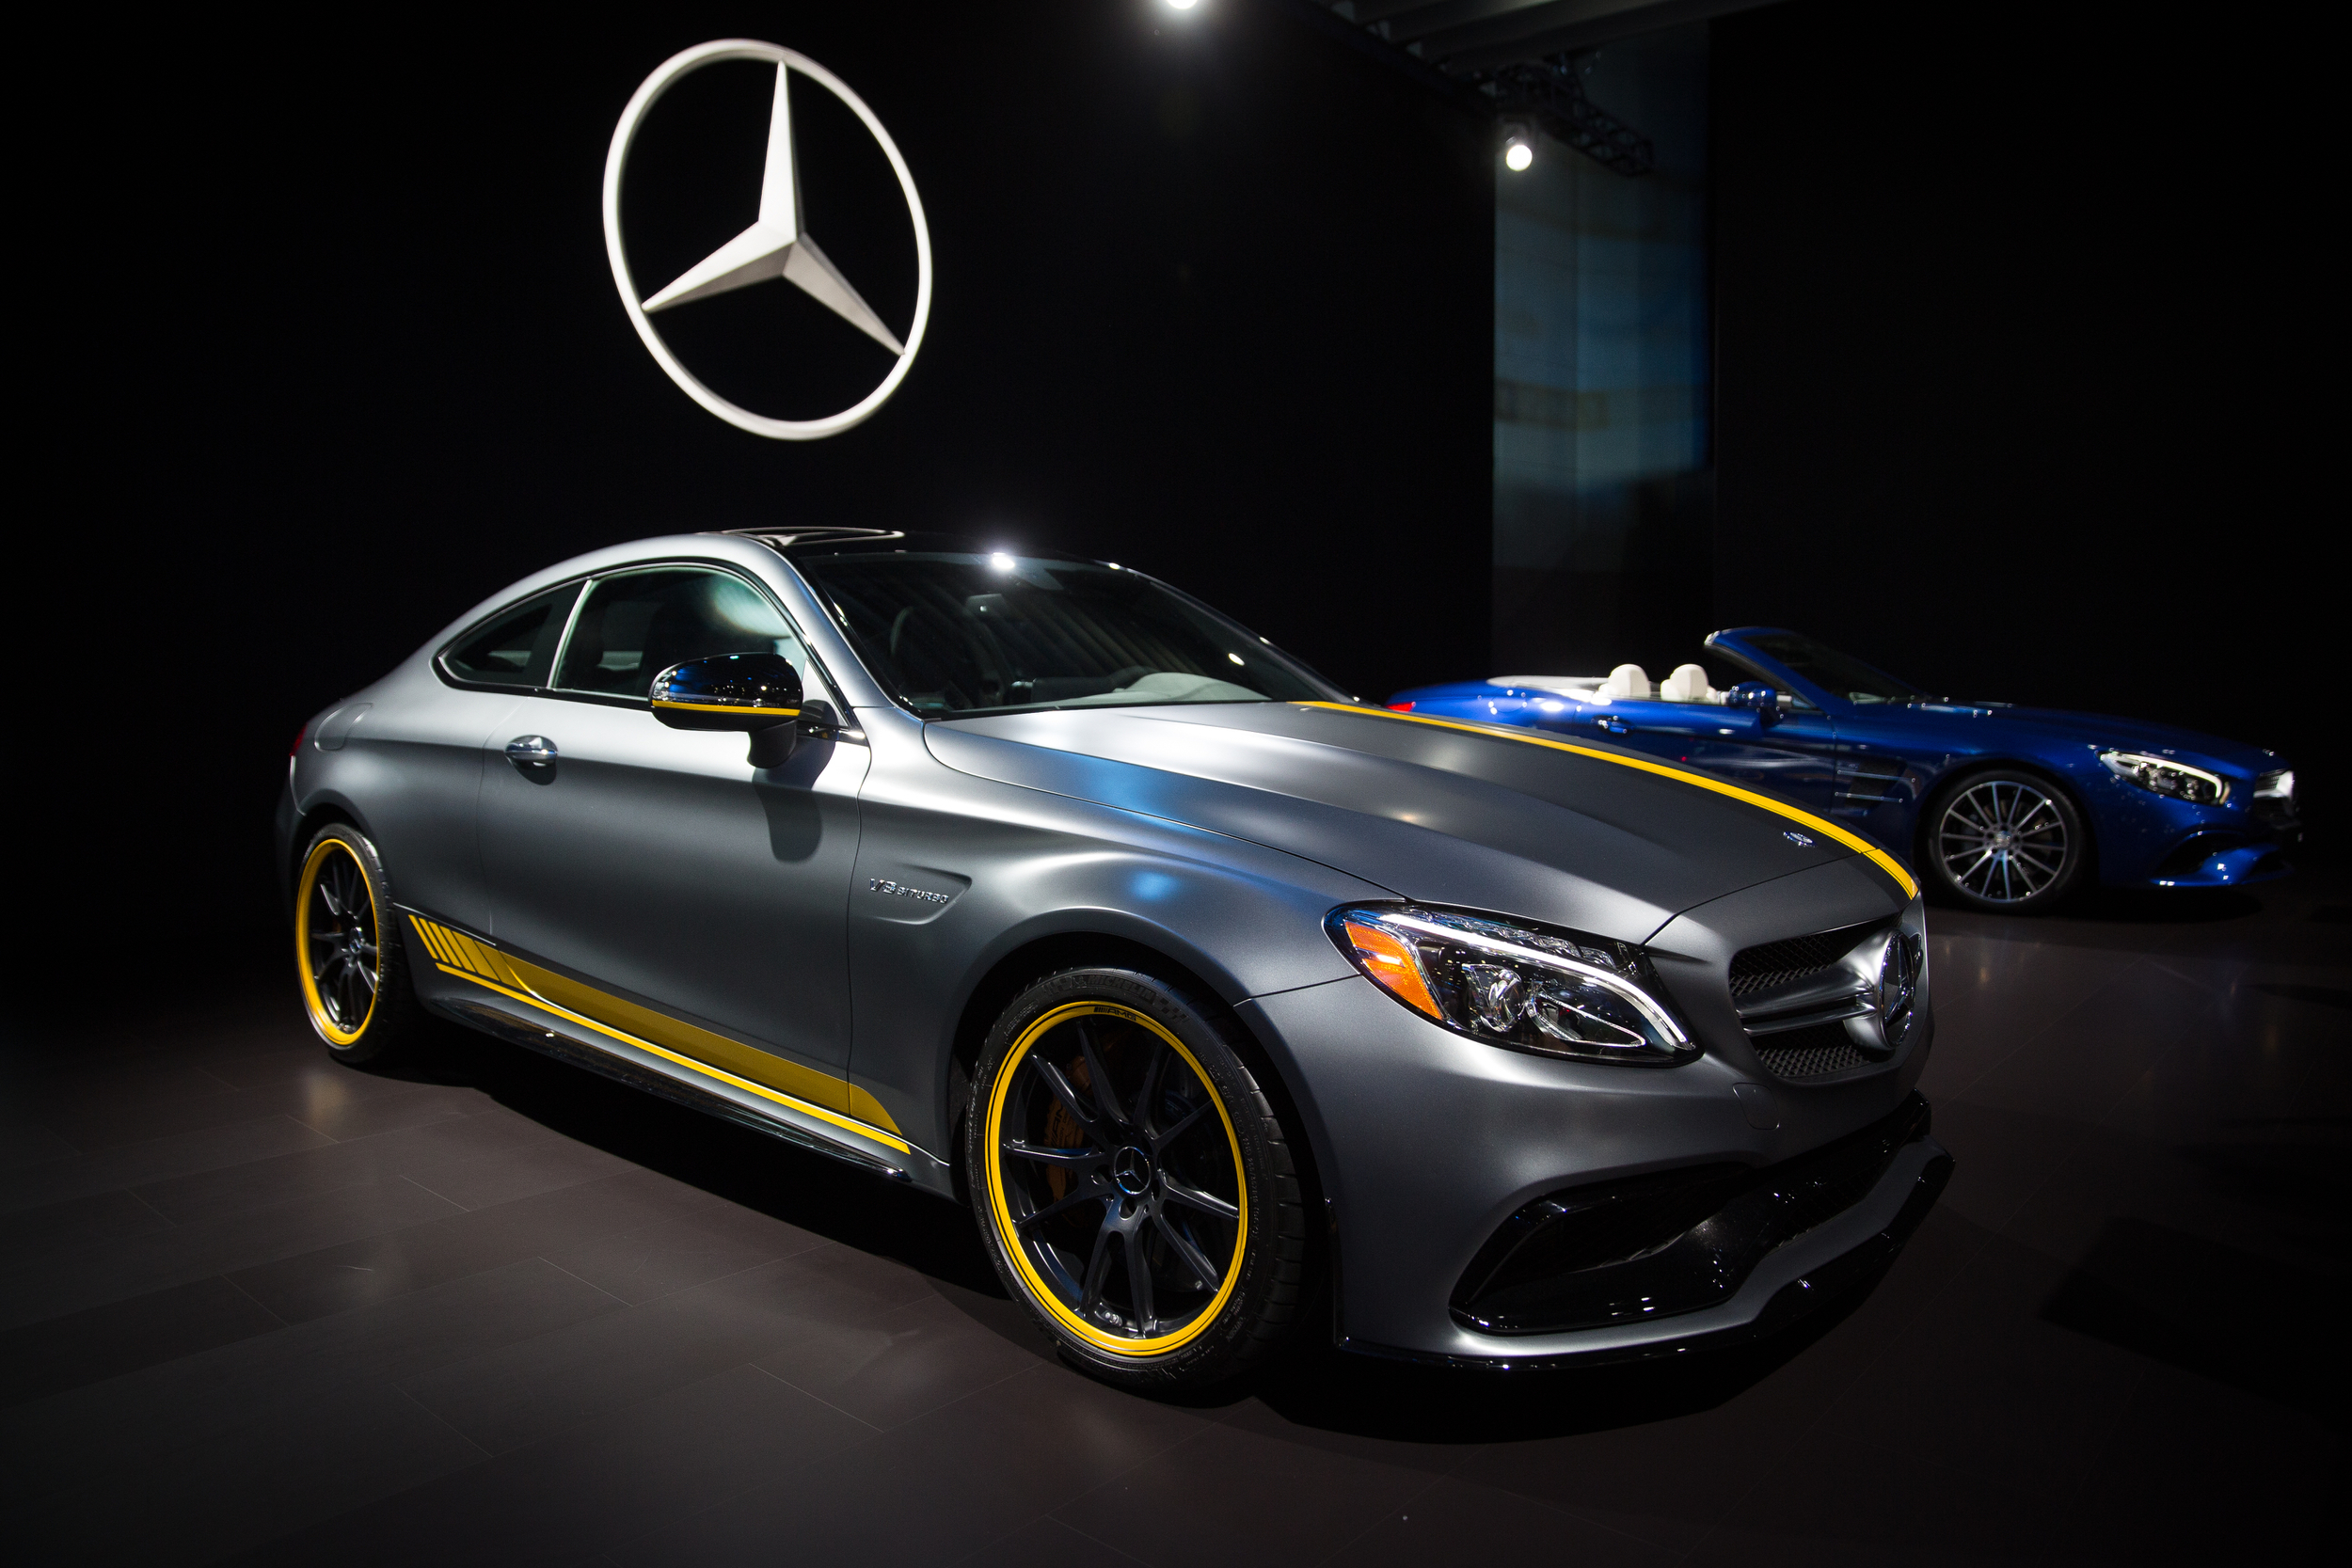 Mercedes seems to have the most shiny display this year - 2015 LA Auto Show